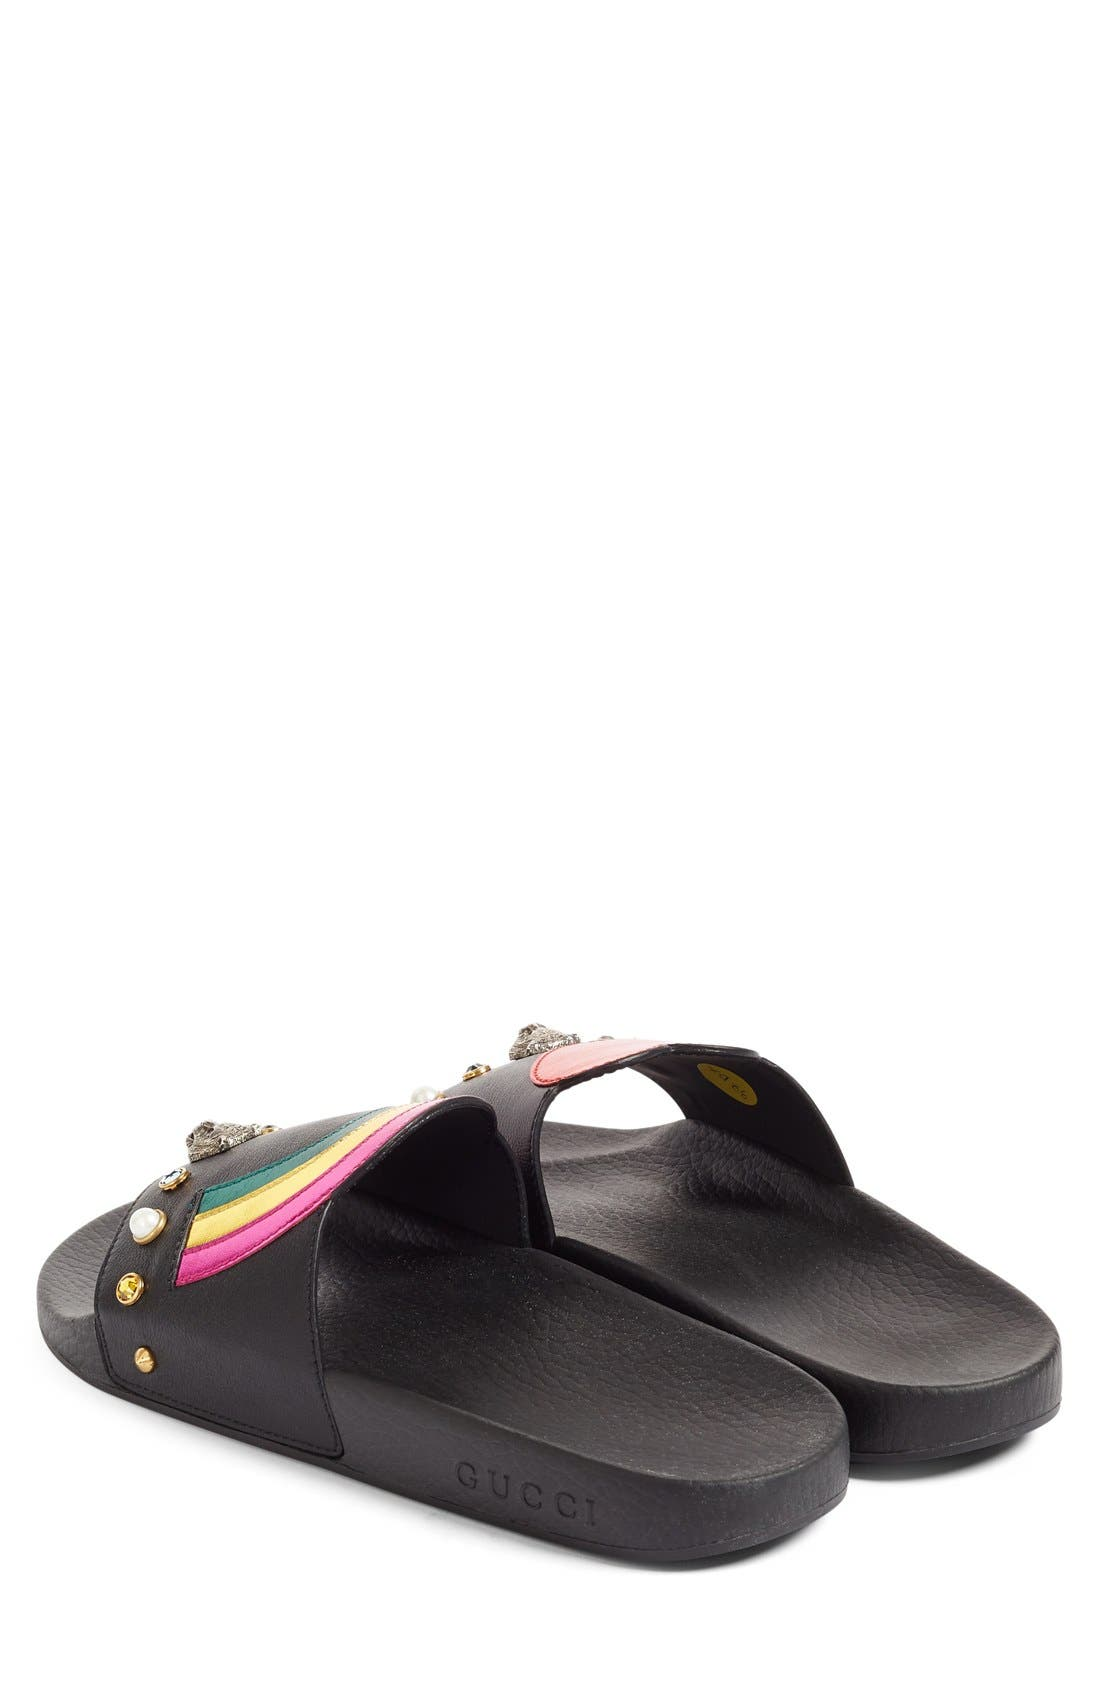 Pursuit Slide Sandal,                             Alternate thumbnail 5, color,                             001